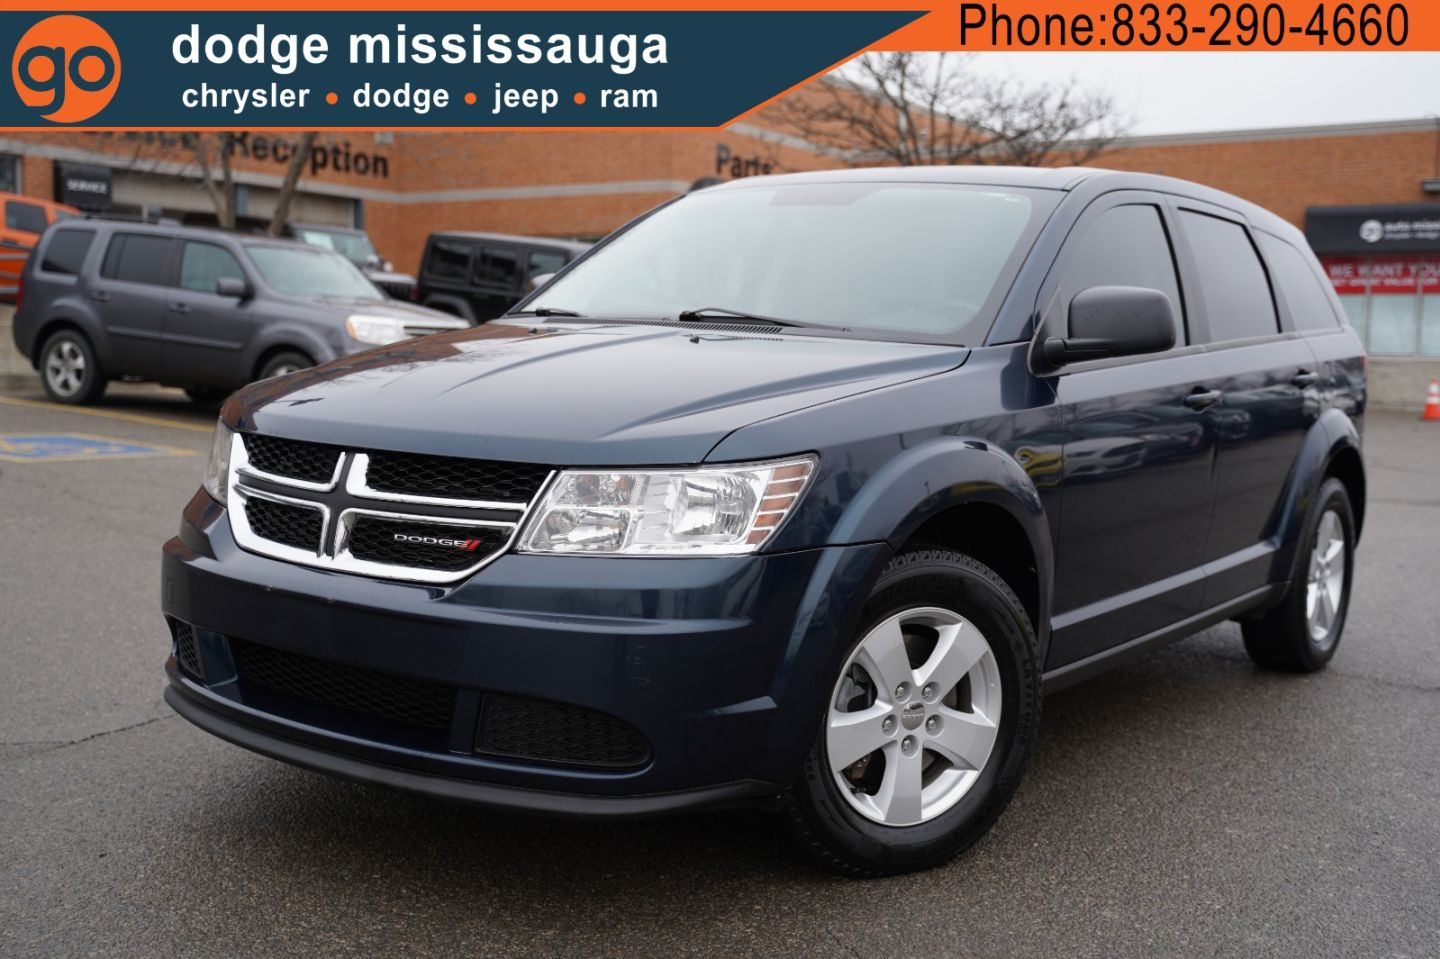 2014 Dodge Journey Canada Value Pkg for sale in Mississauga, Ontario